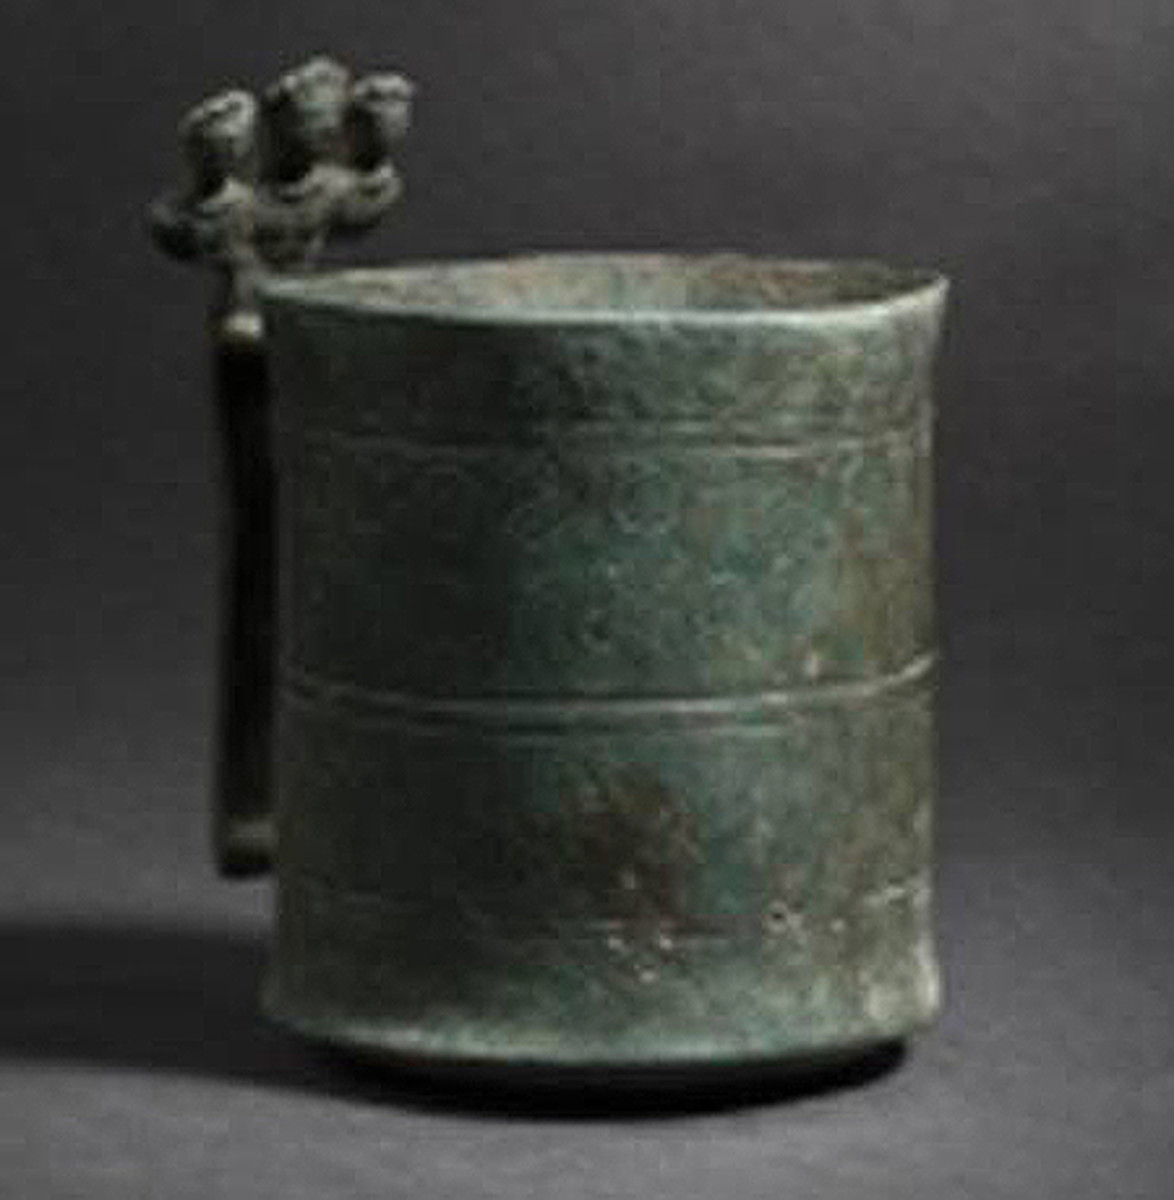 Late Roman measuring cup, inscription revealing its origins during the years 402 – 408 A.D